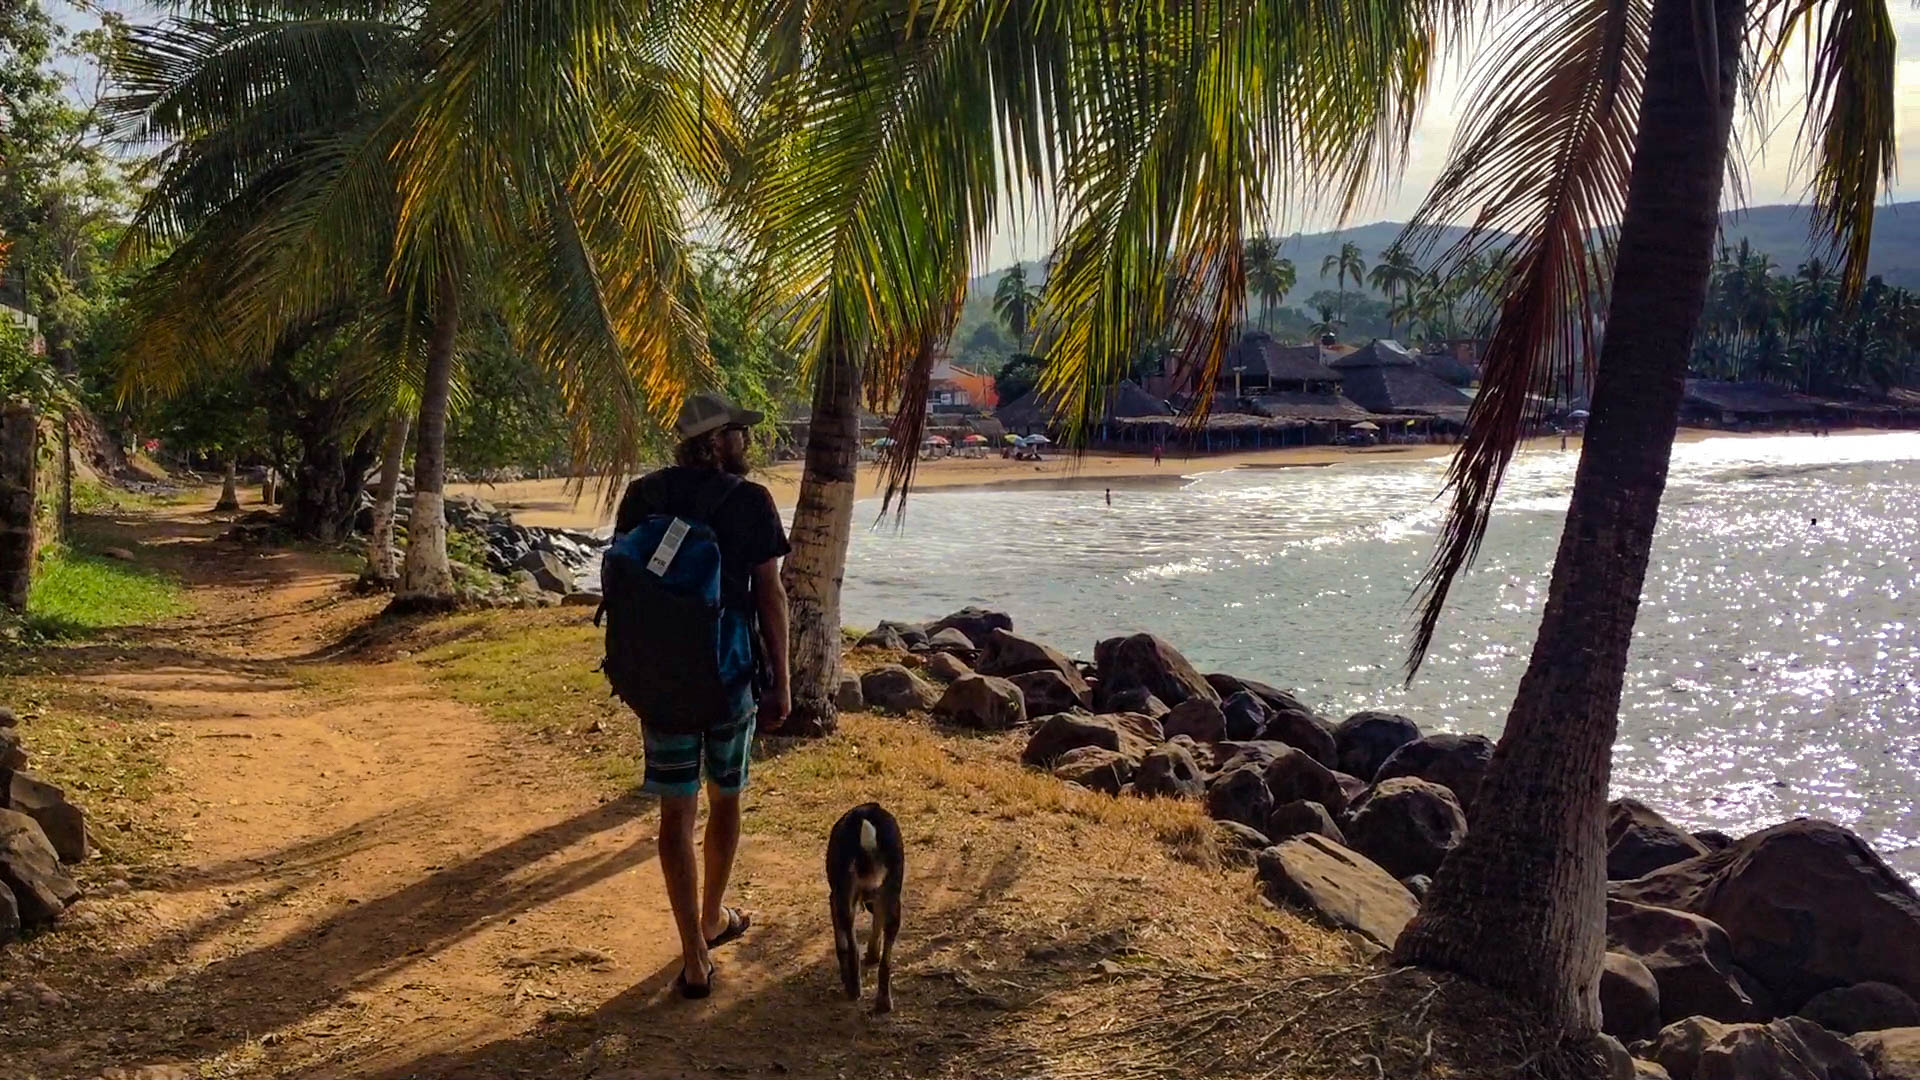 Moments to breath on the shoreline path at Chacala.